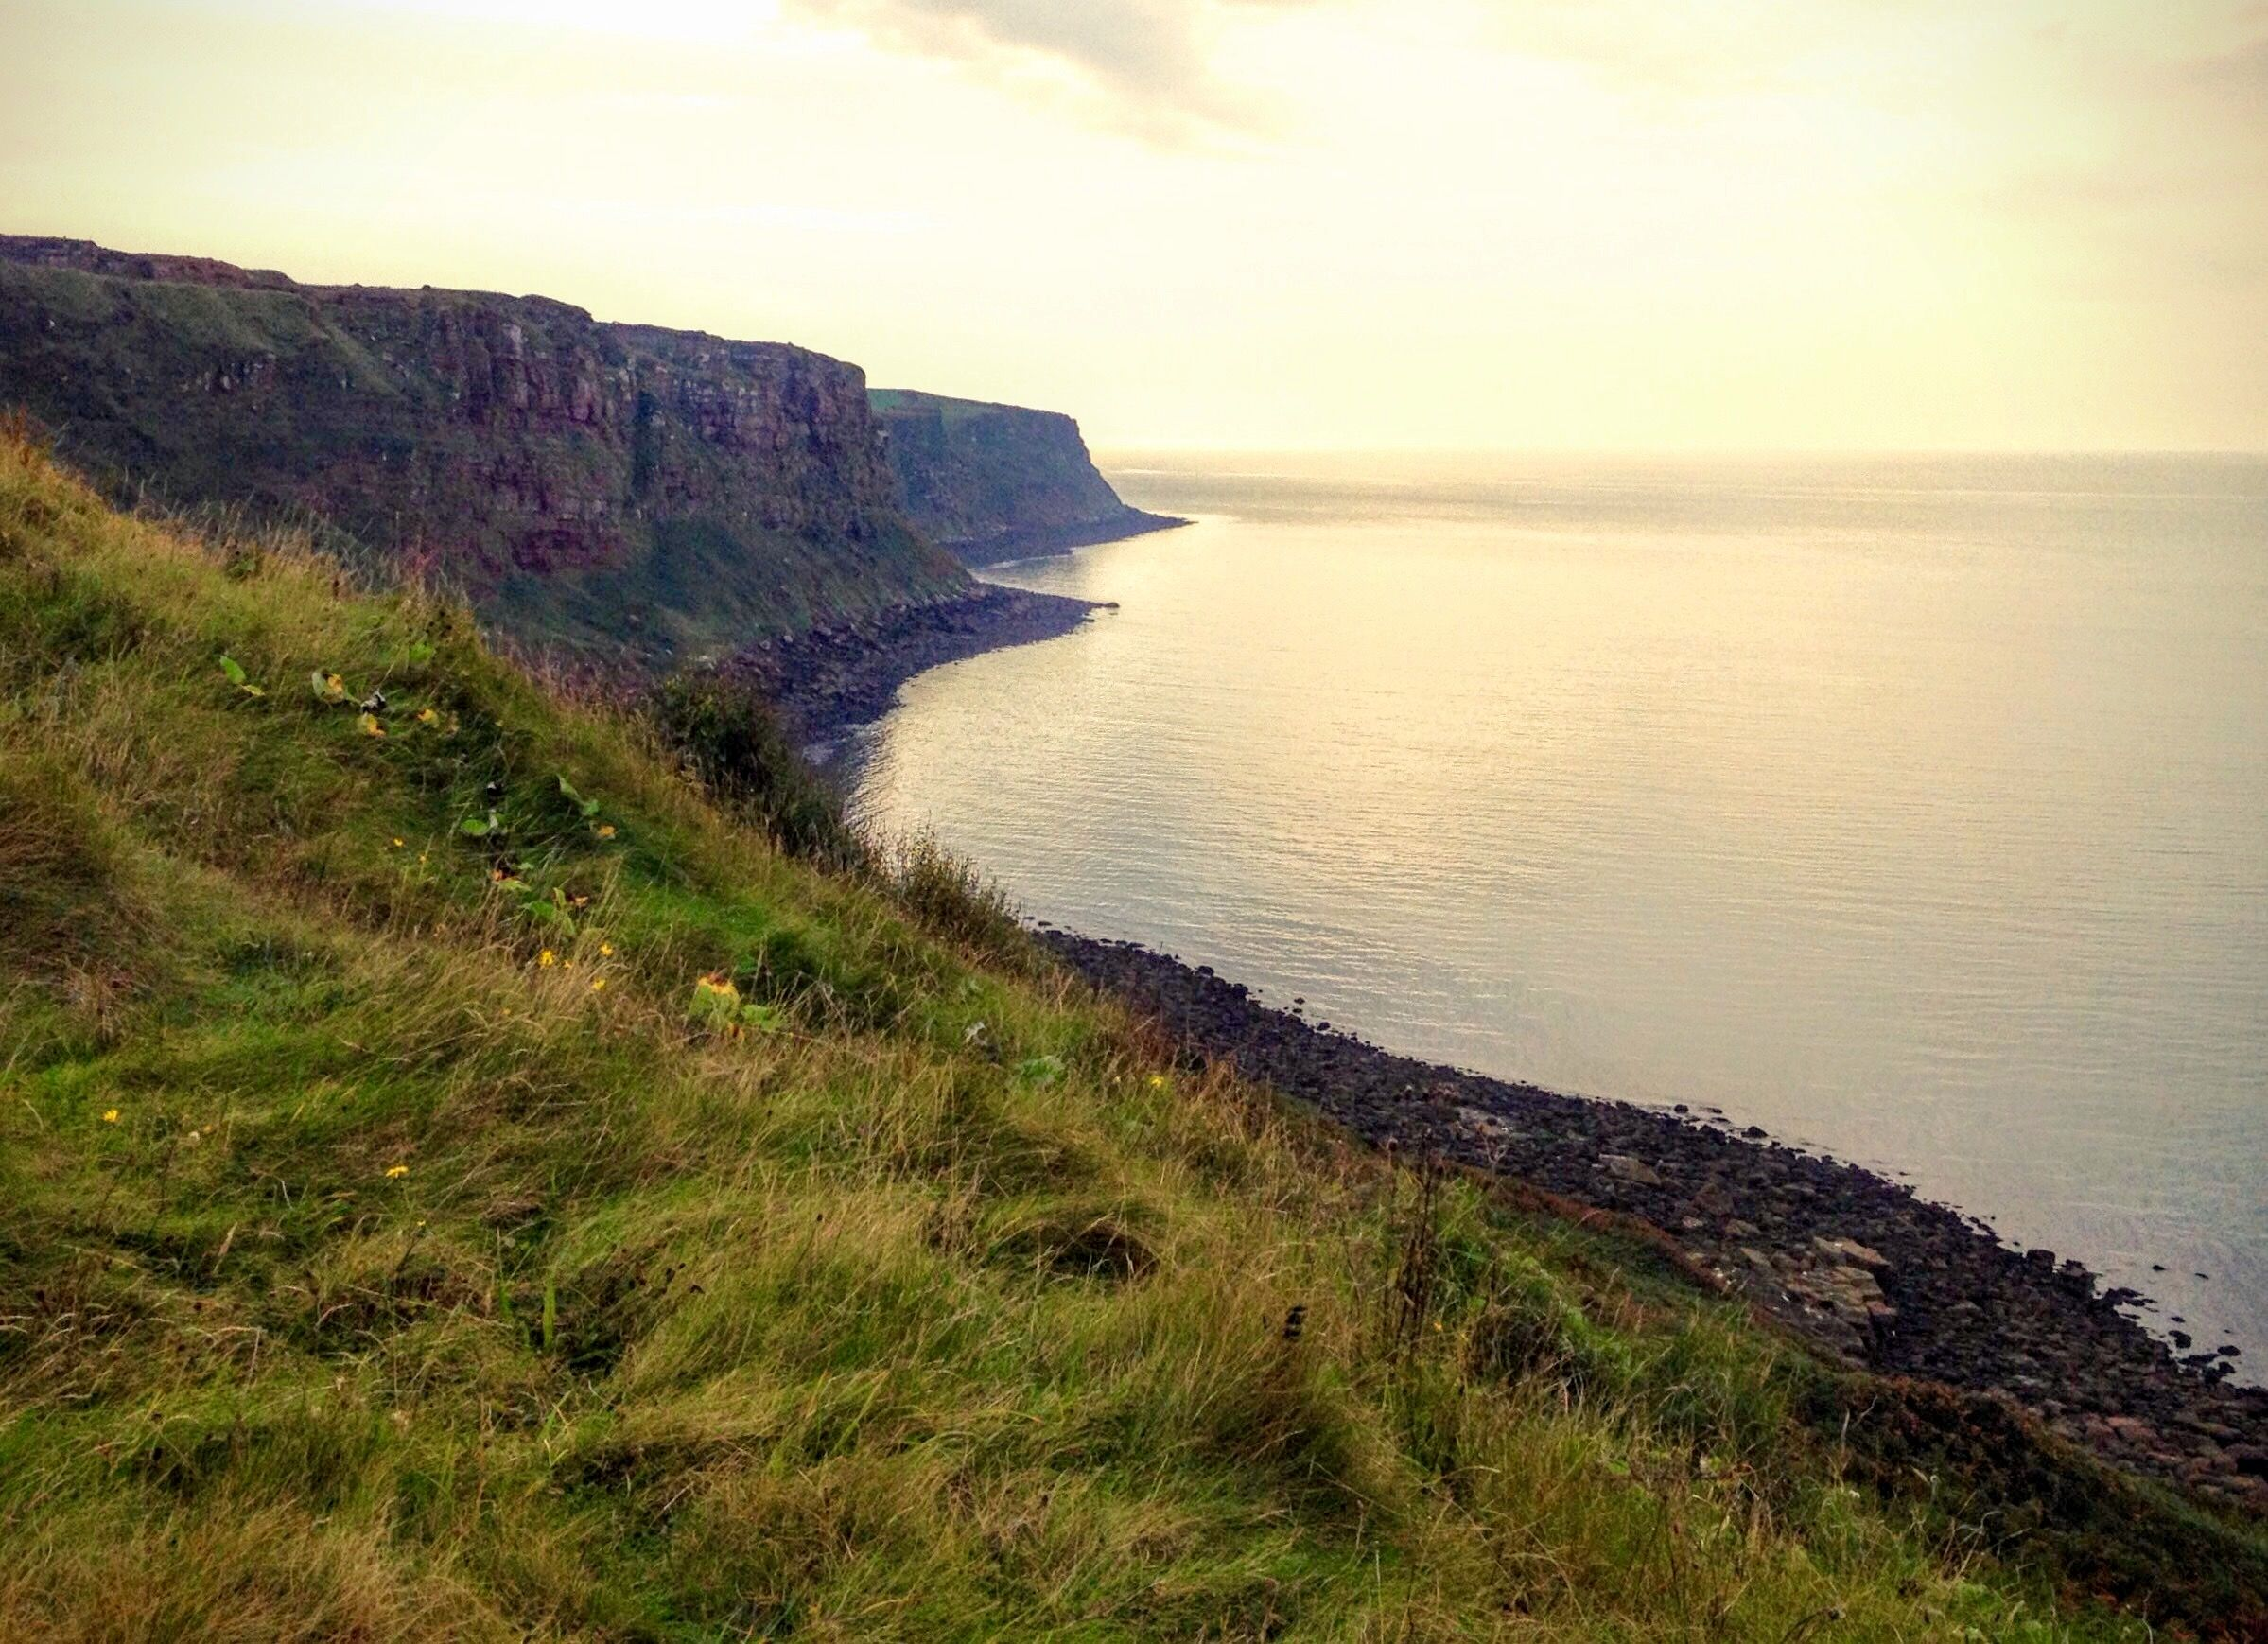 Cliff tops, going towards St Bees Head, Cumbria. A great place to go walking!